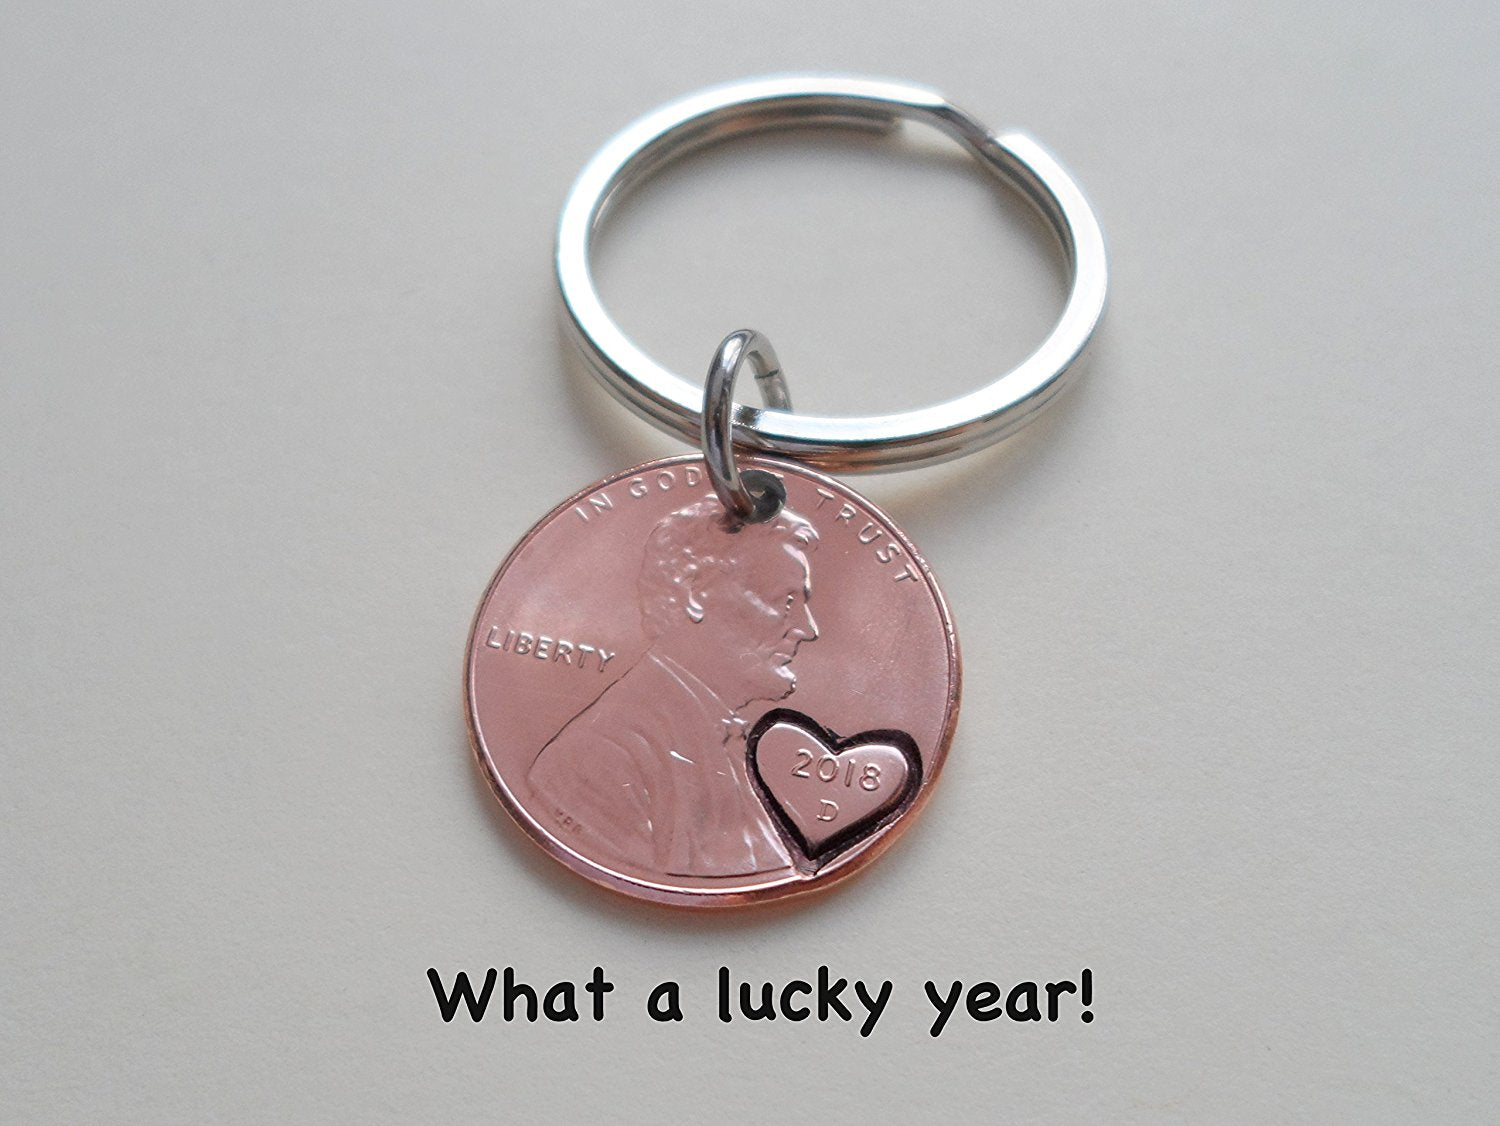 Anniversary Gift 2018 Penny Keychain W Heart Around Year